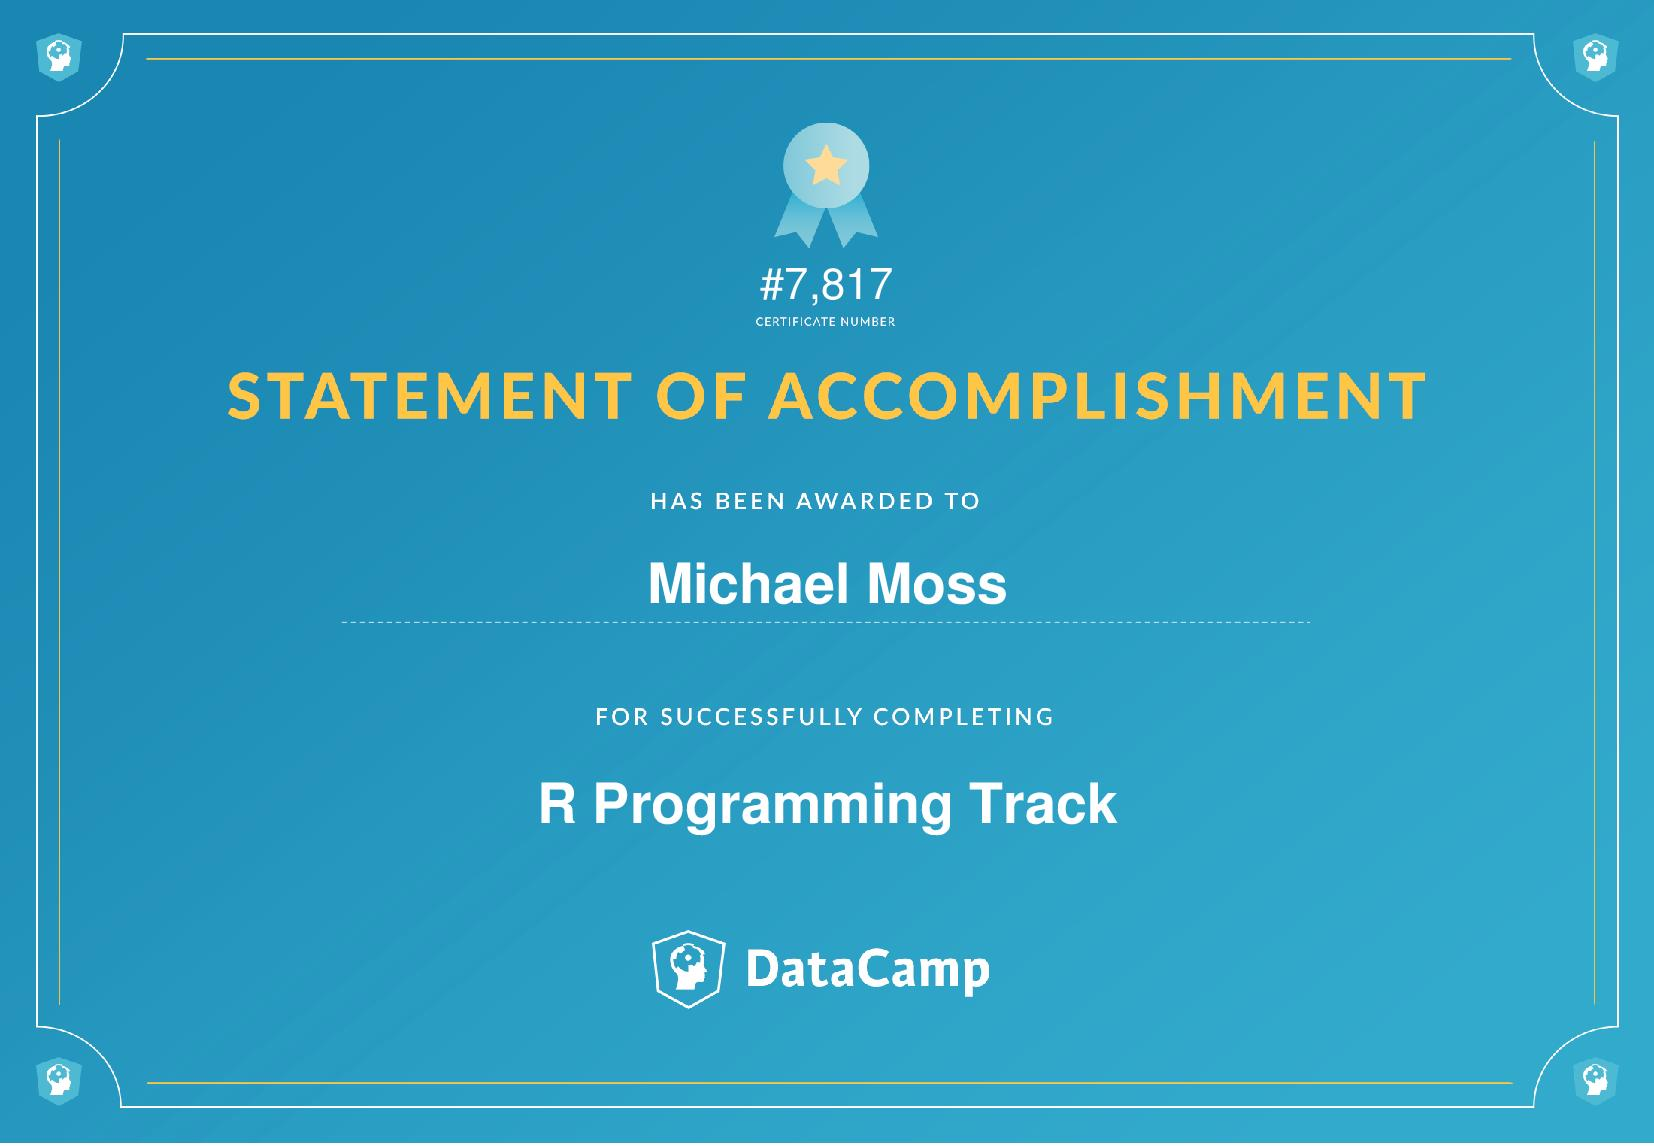 R Programming Track Certificate